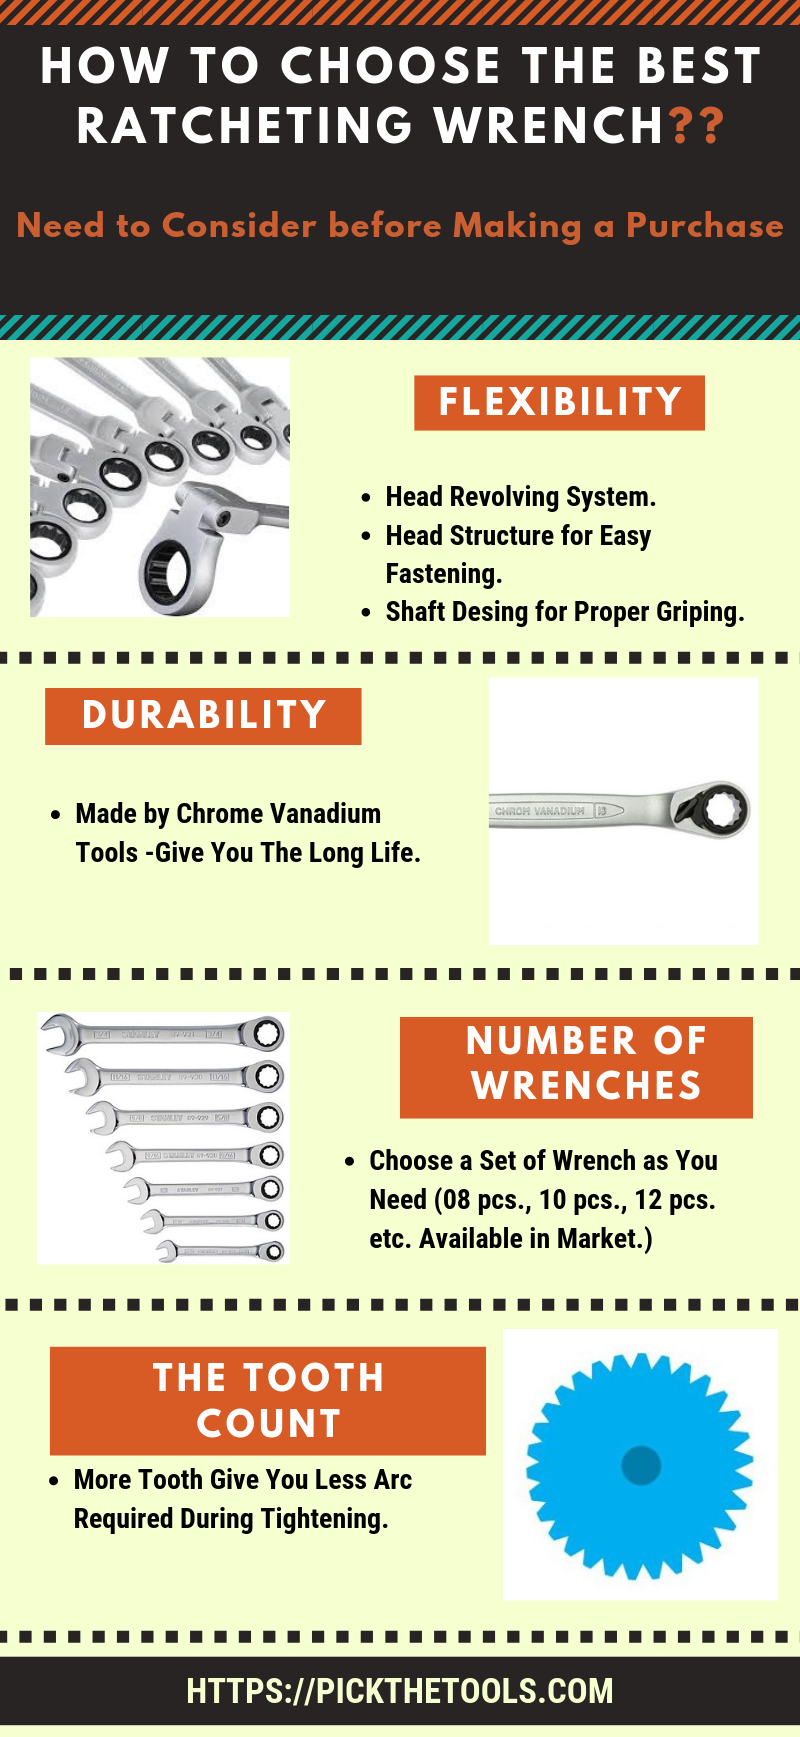 How to choose the best Ratcheting Wrench